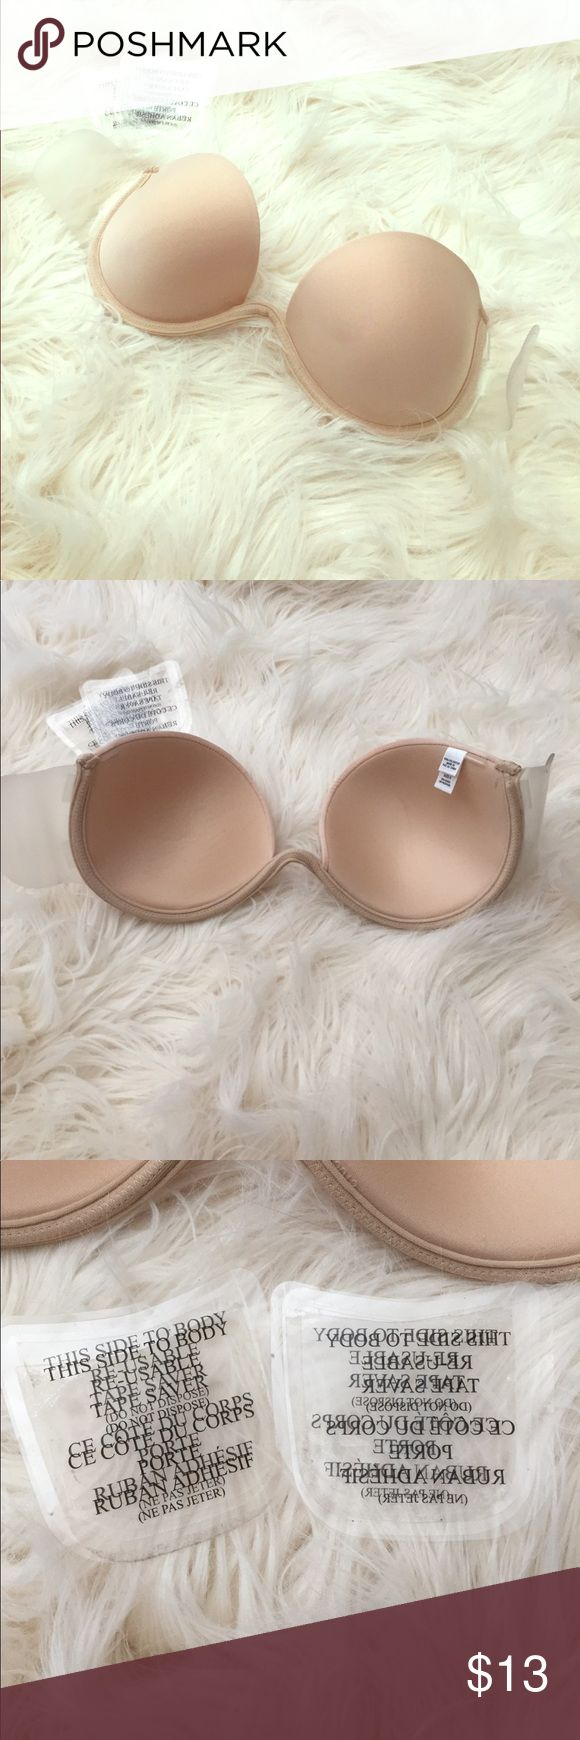 Backless adhesive bra For those sexy backless dresses! Bra itself used only once, and old adhesive strips have been removed and BRAND NEW body adhesive strips are included. These bras are normally really expensive- grab it at a great price! Intimates & Sleepwear Bras